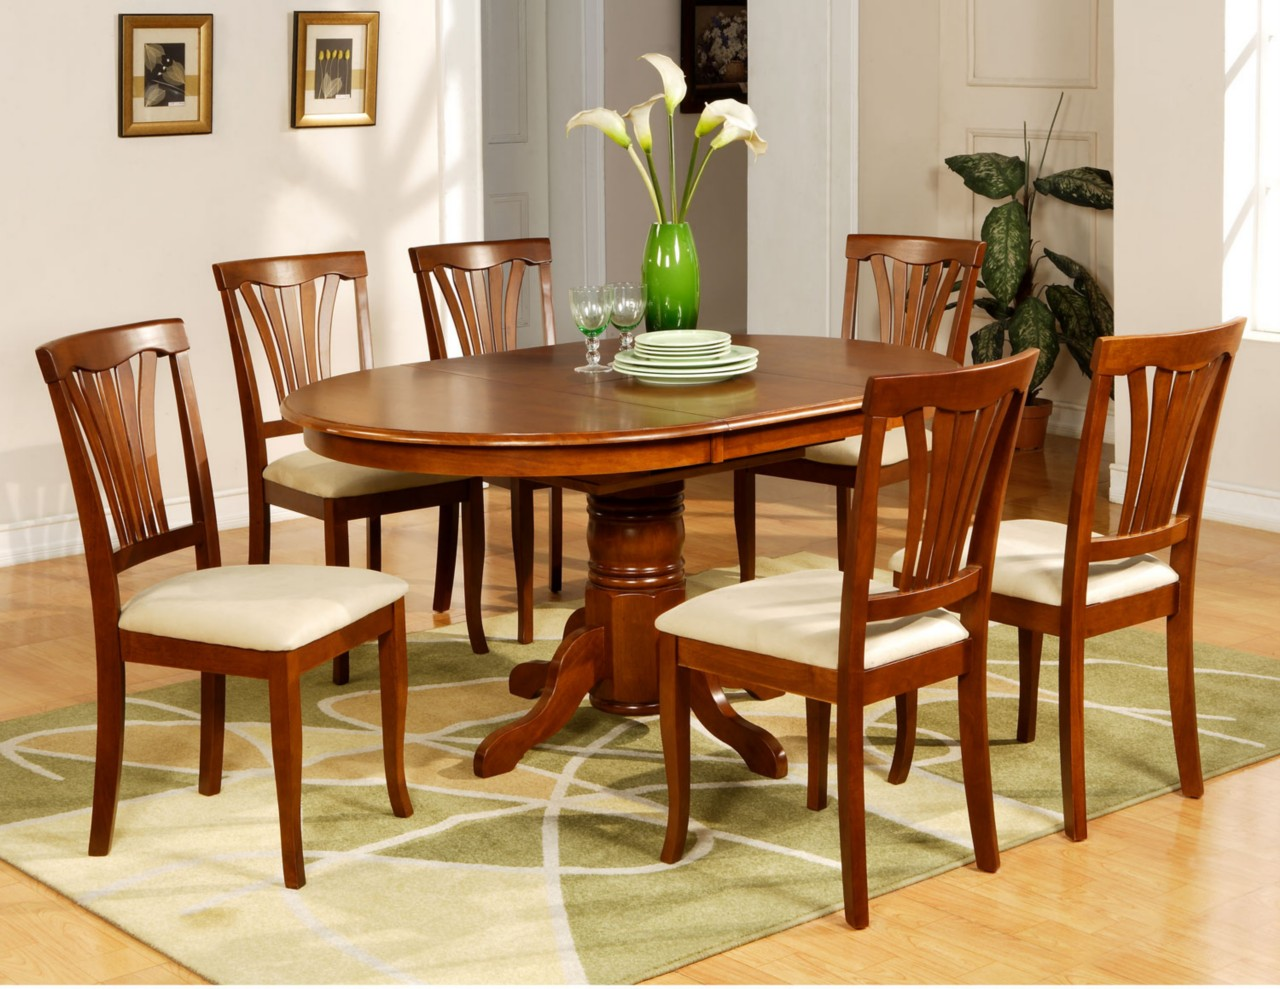 6 Dining Room Chairs 7 Pc Avon Oval Dinette Kitchen Dining Room Table With 6